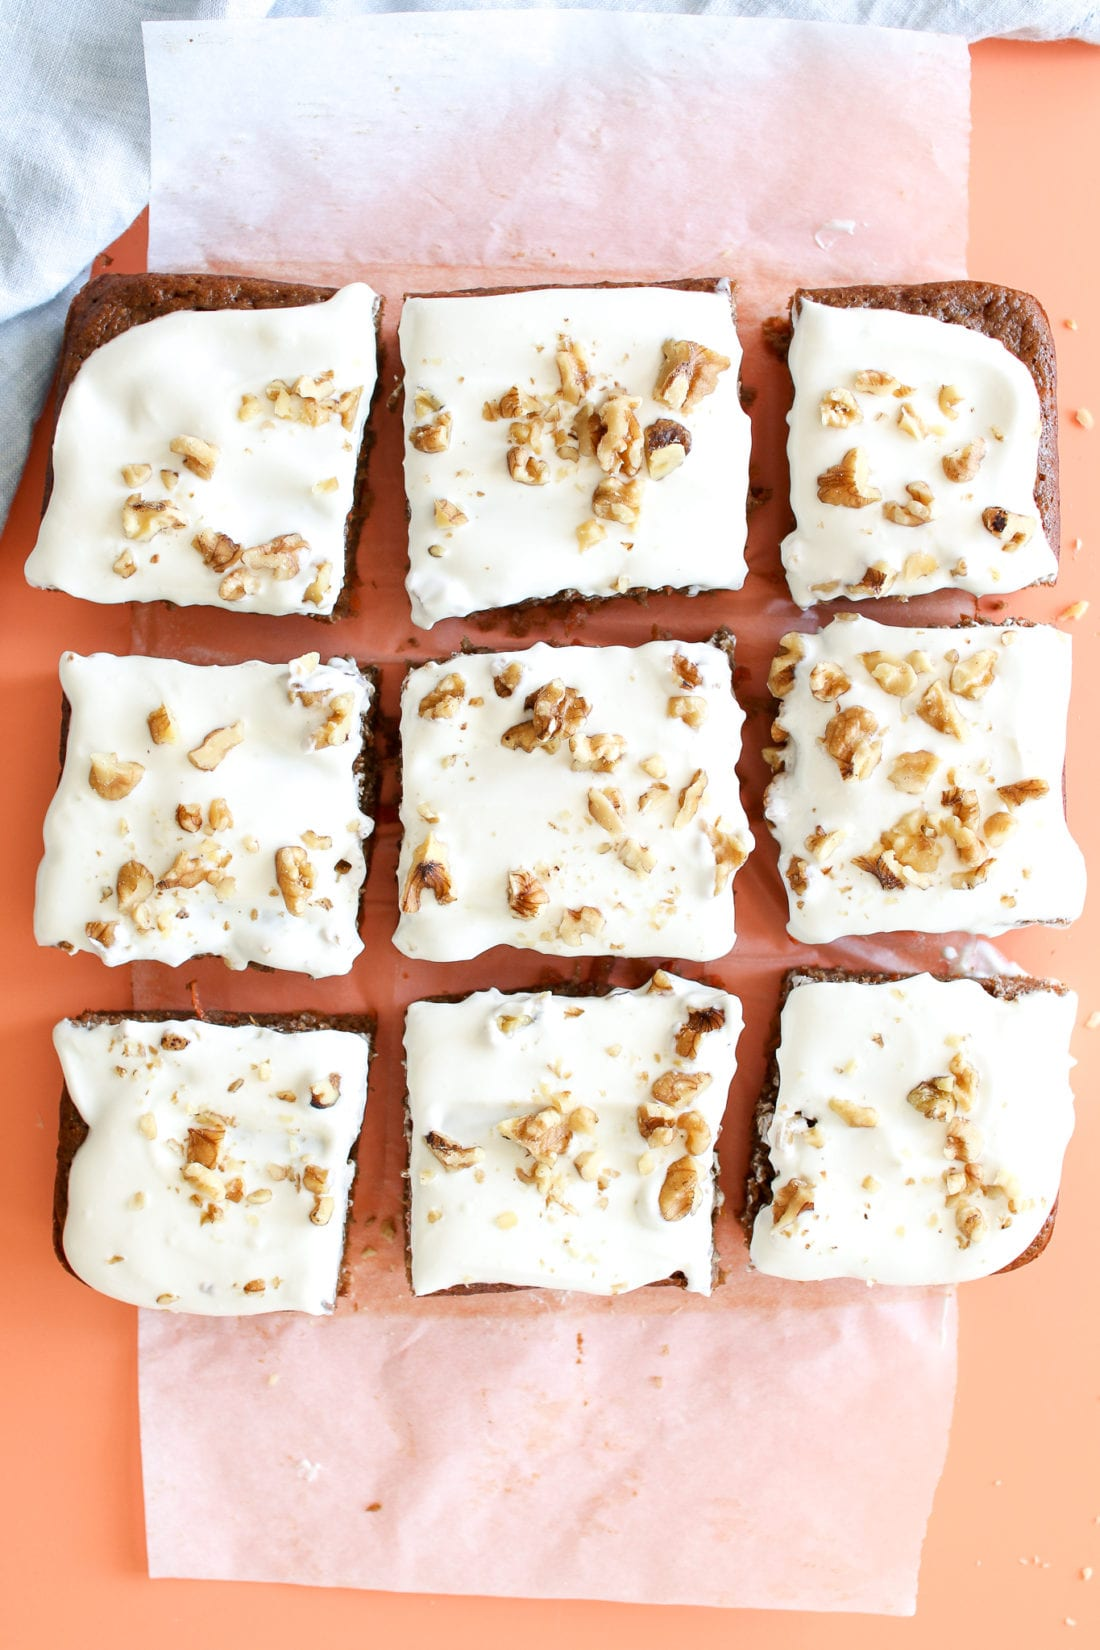 A healthy carrot cake, naturally sweetened with applesauce and maple syrup, loaded with freshly grated carrots, warming spices, topped with a honey cream cheese frosting and crunchy walnuts.